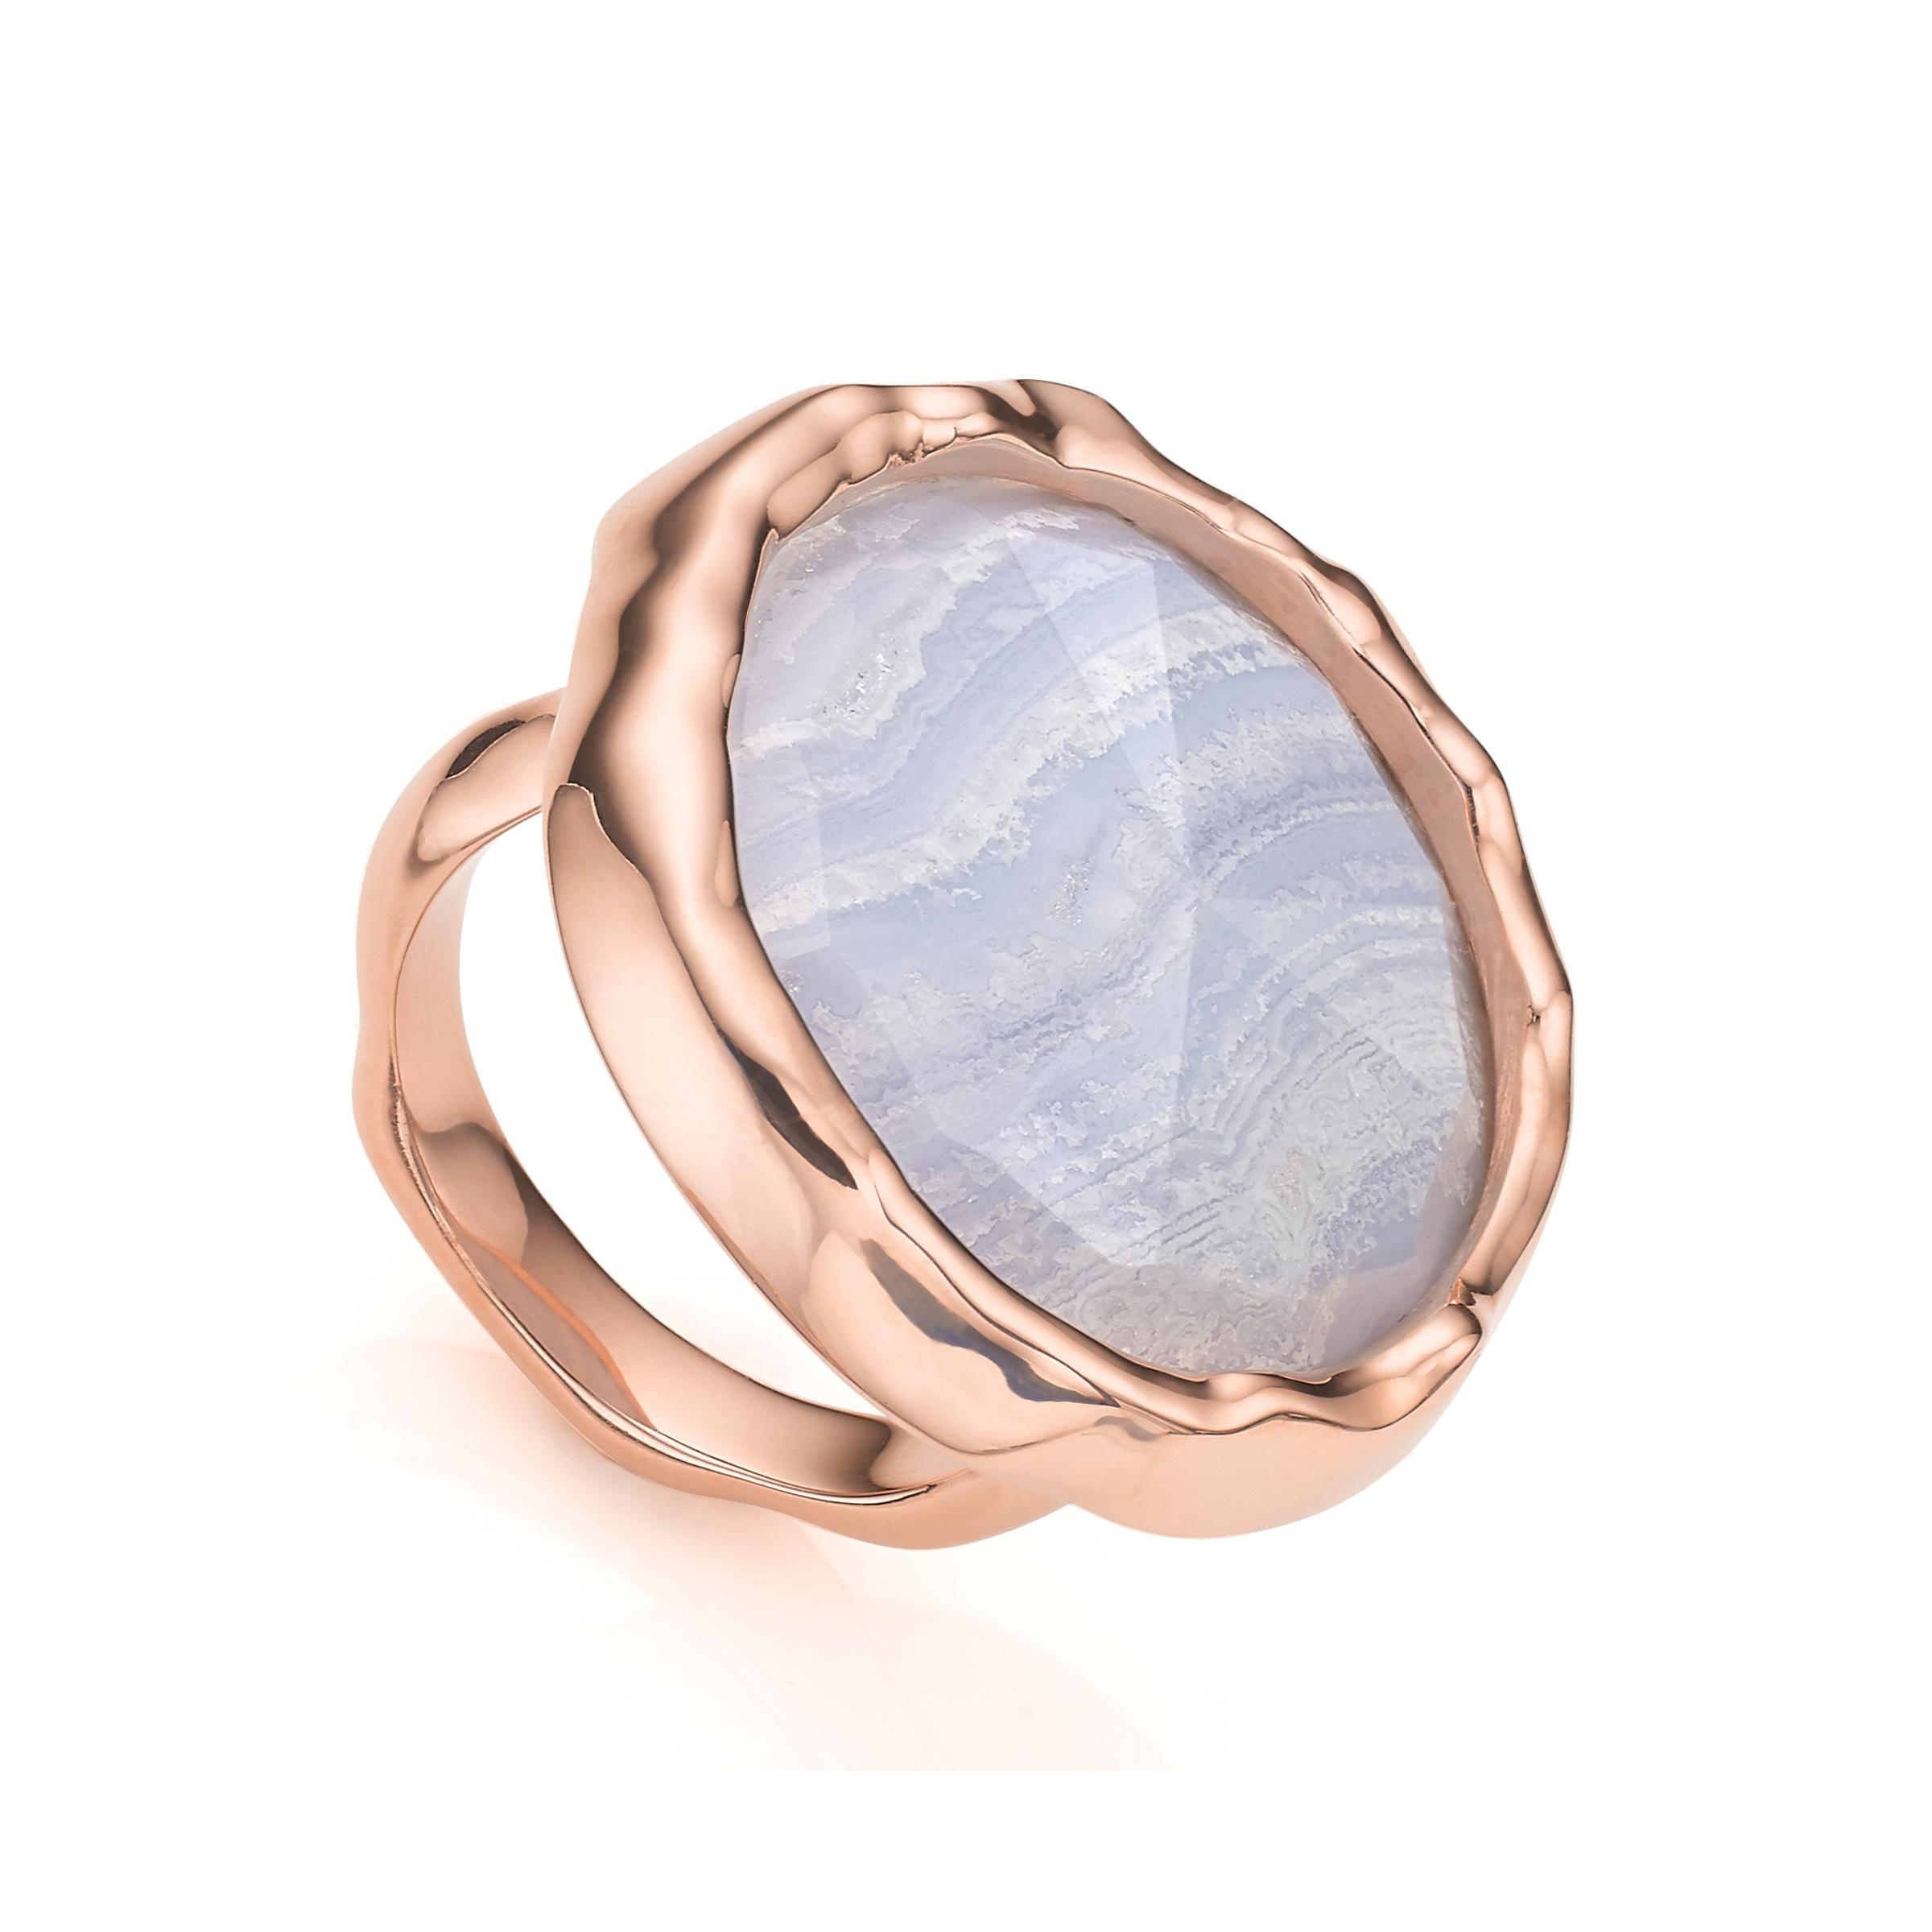 Rose Gold Siren Cocktail Round Ring Blue Lace Agate Monica Vinader QnsAc